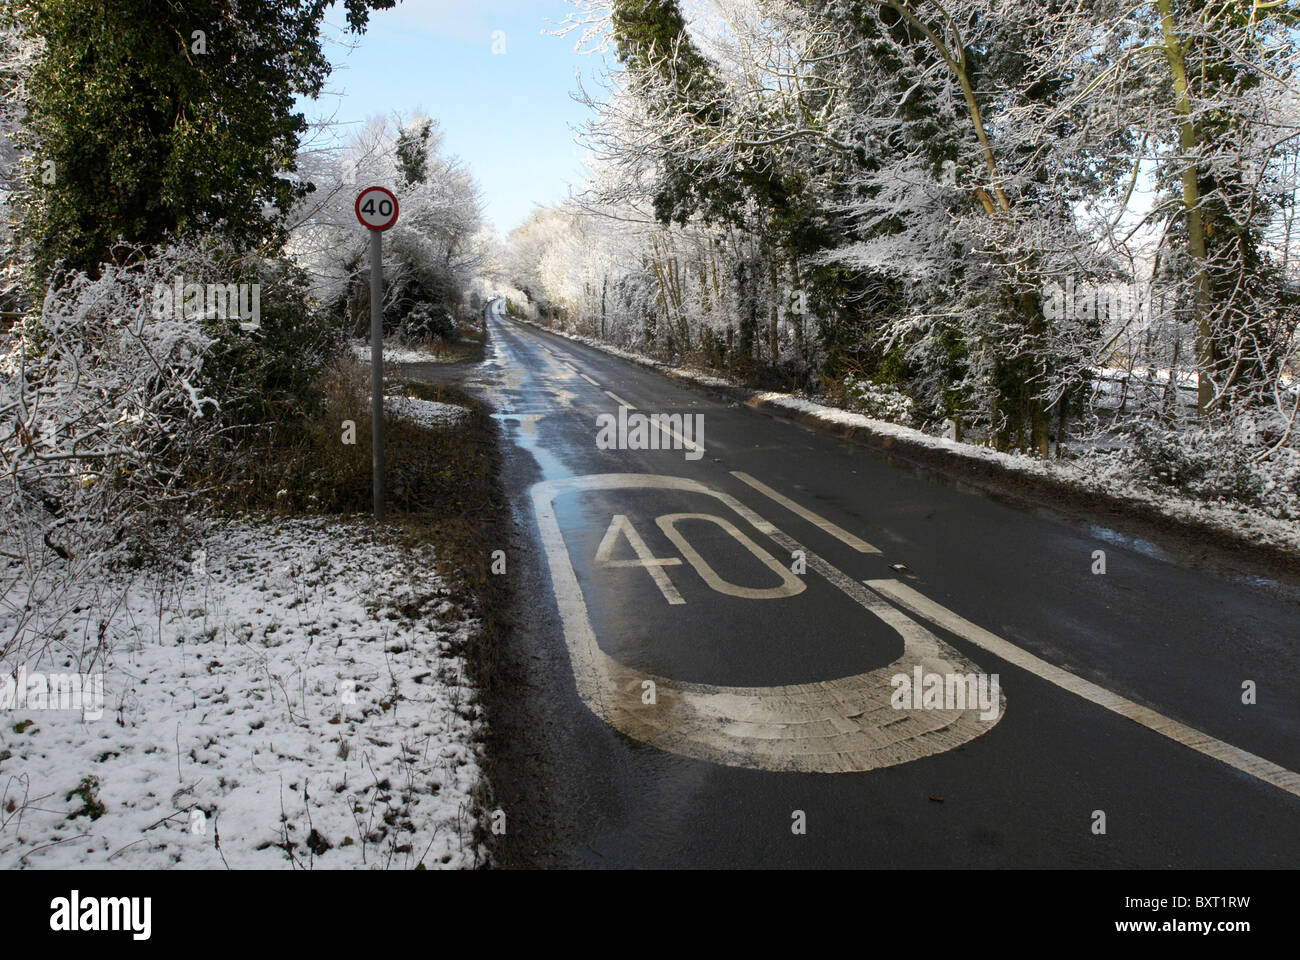 Speed limit sign on road in winter UK - Stock Image